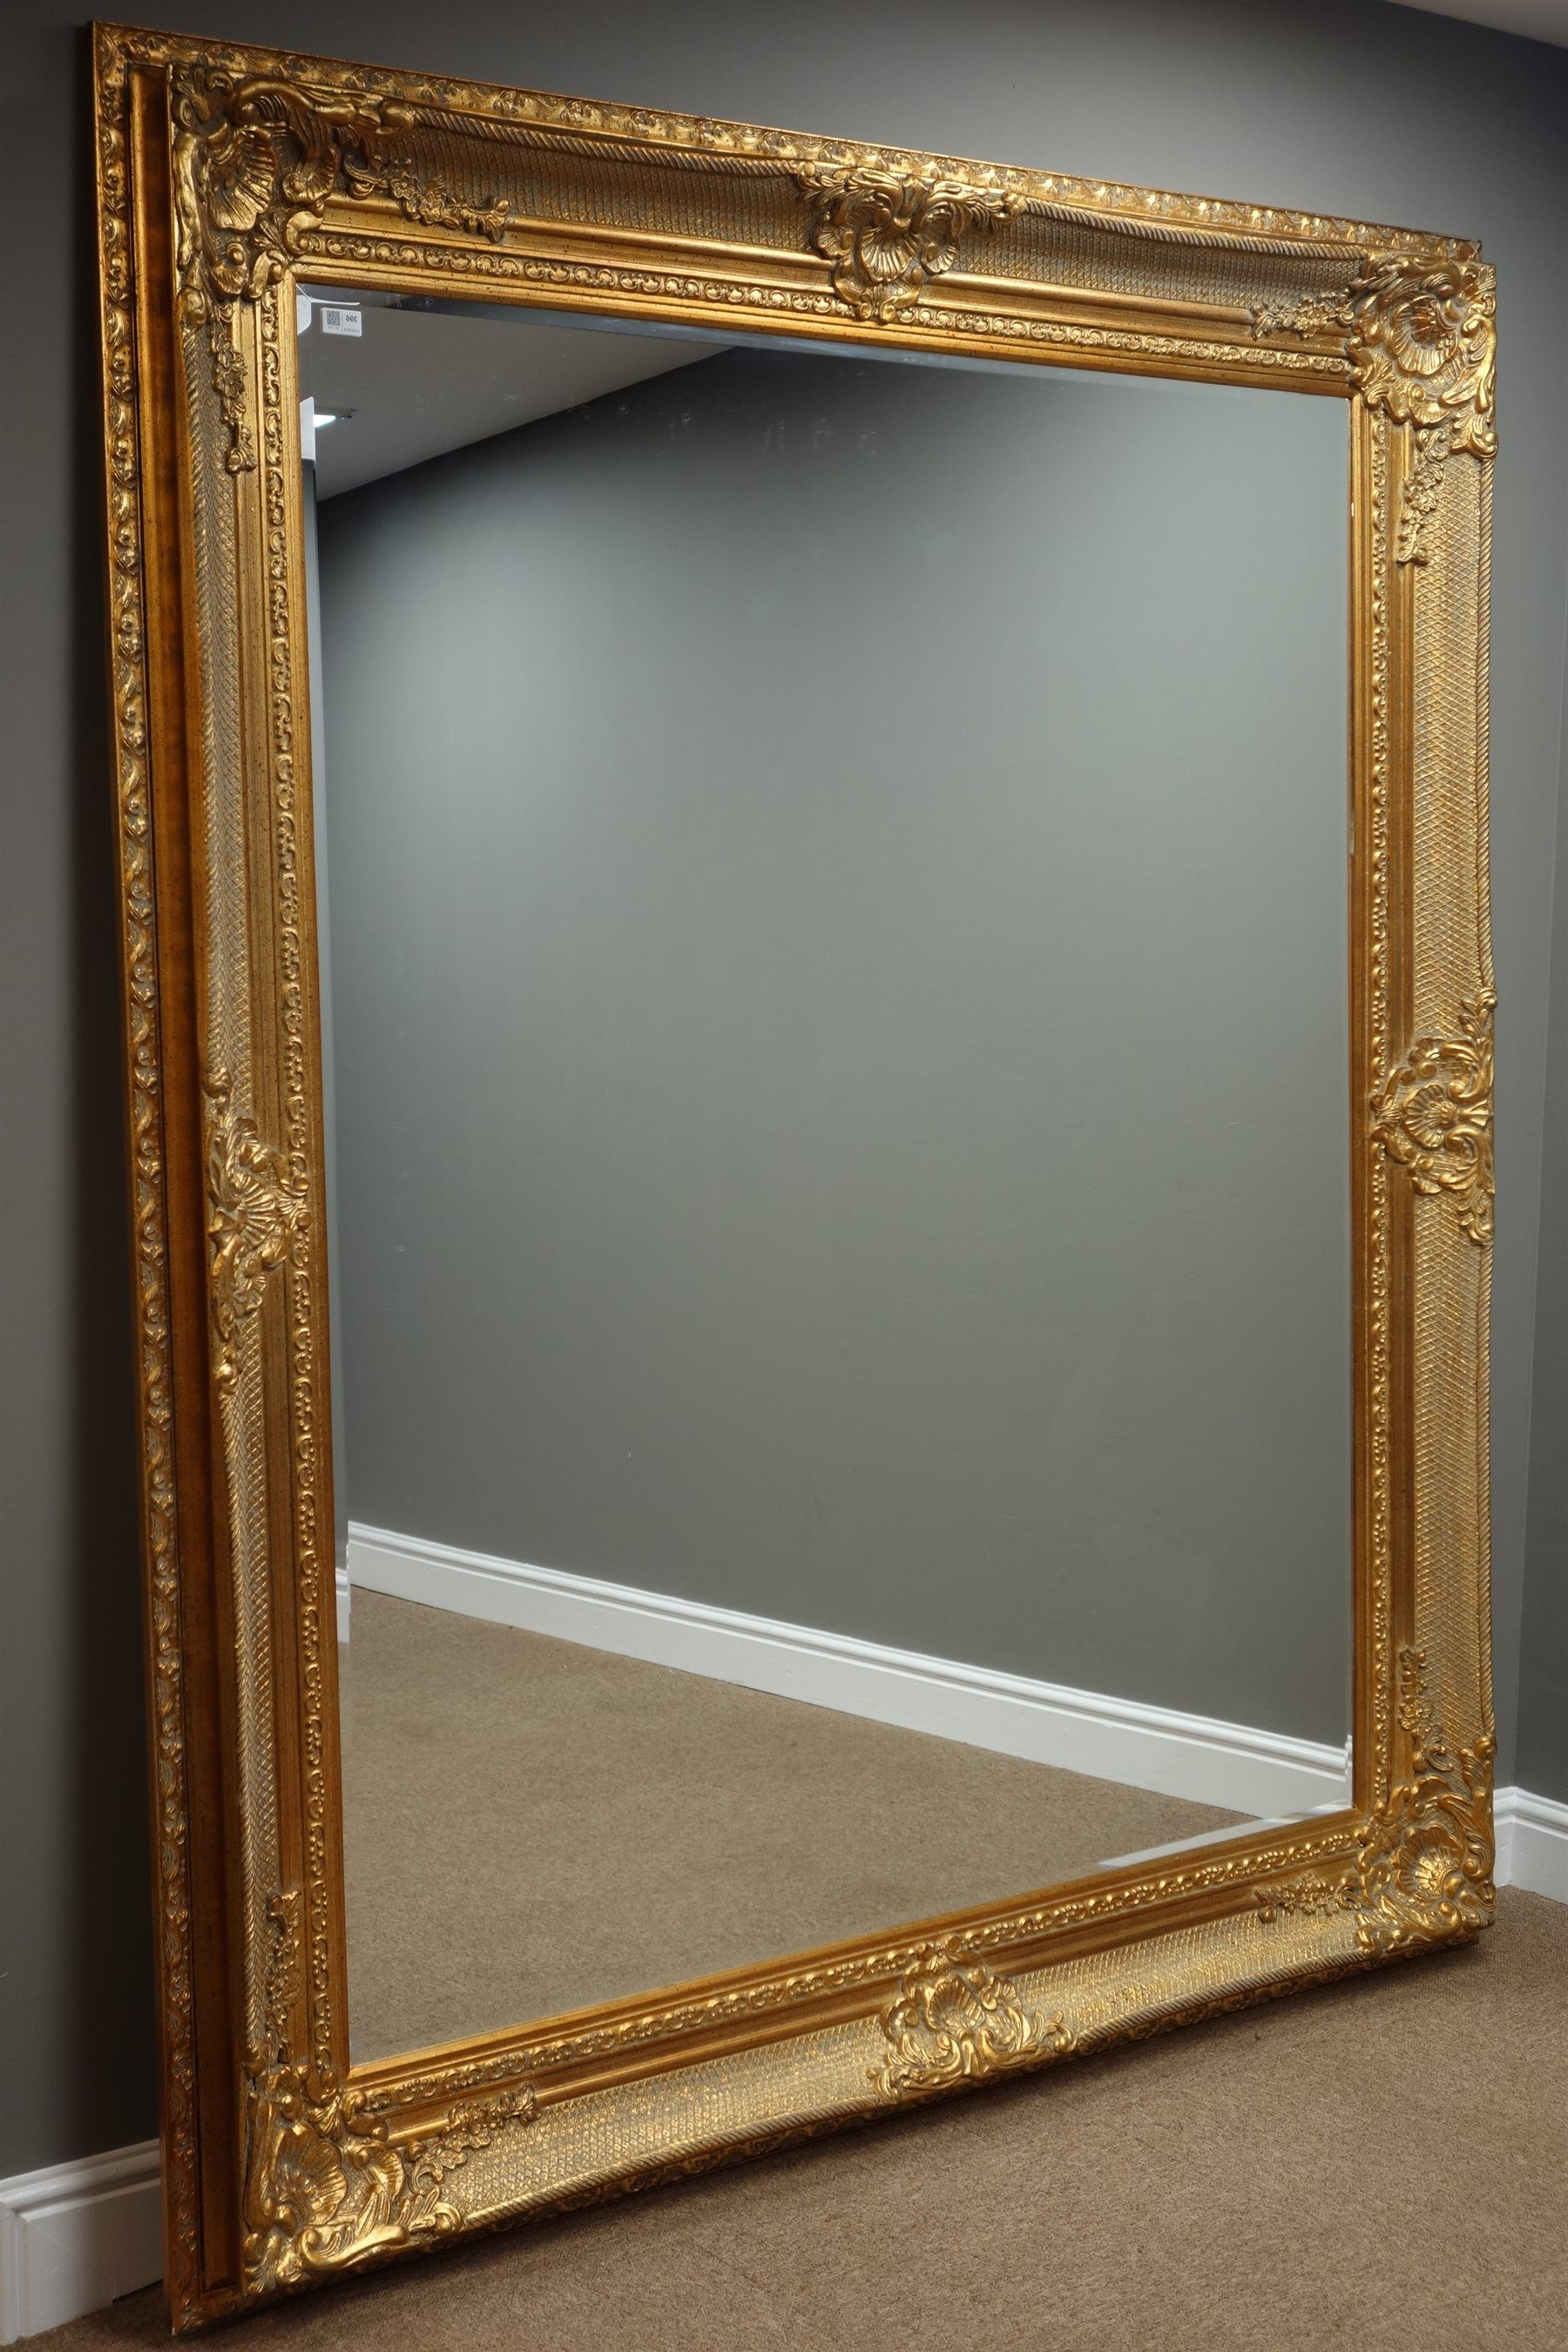 Extra Large Bevelled Edge Wall Mirrors Intended For Well Liked Large Rectangular Bevelled Edge Wall Mirror In Ornate Swept Gilt (Gallery 9 of 20)